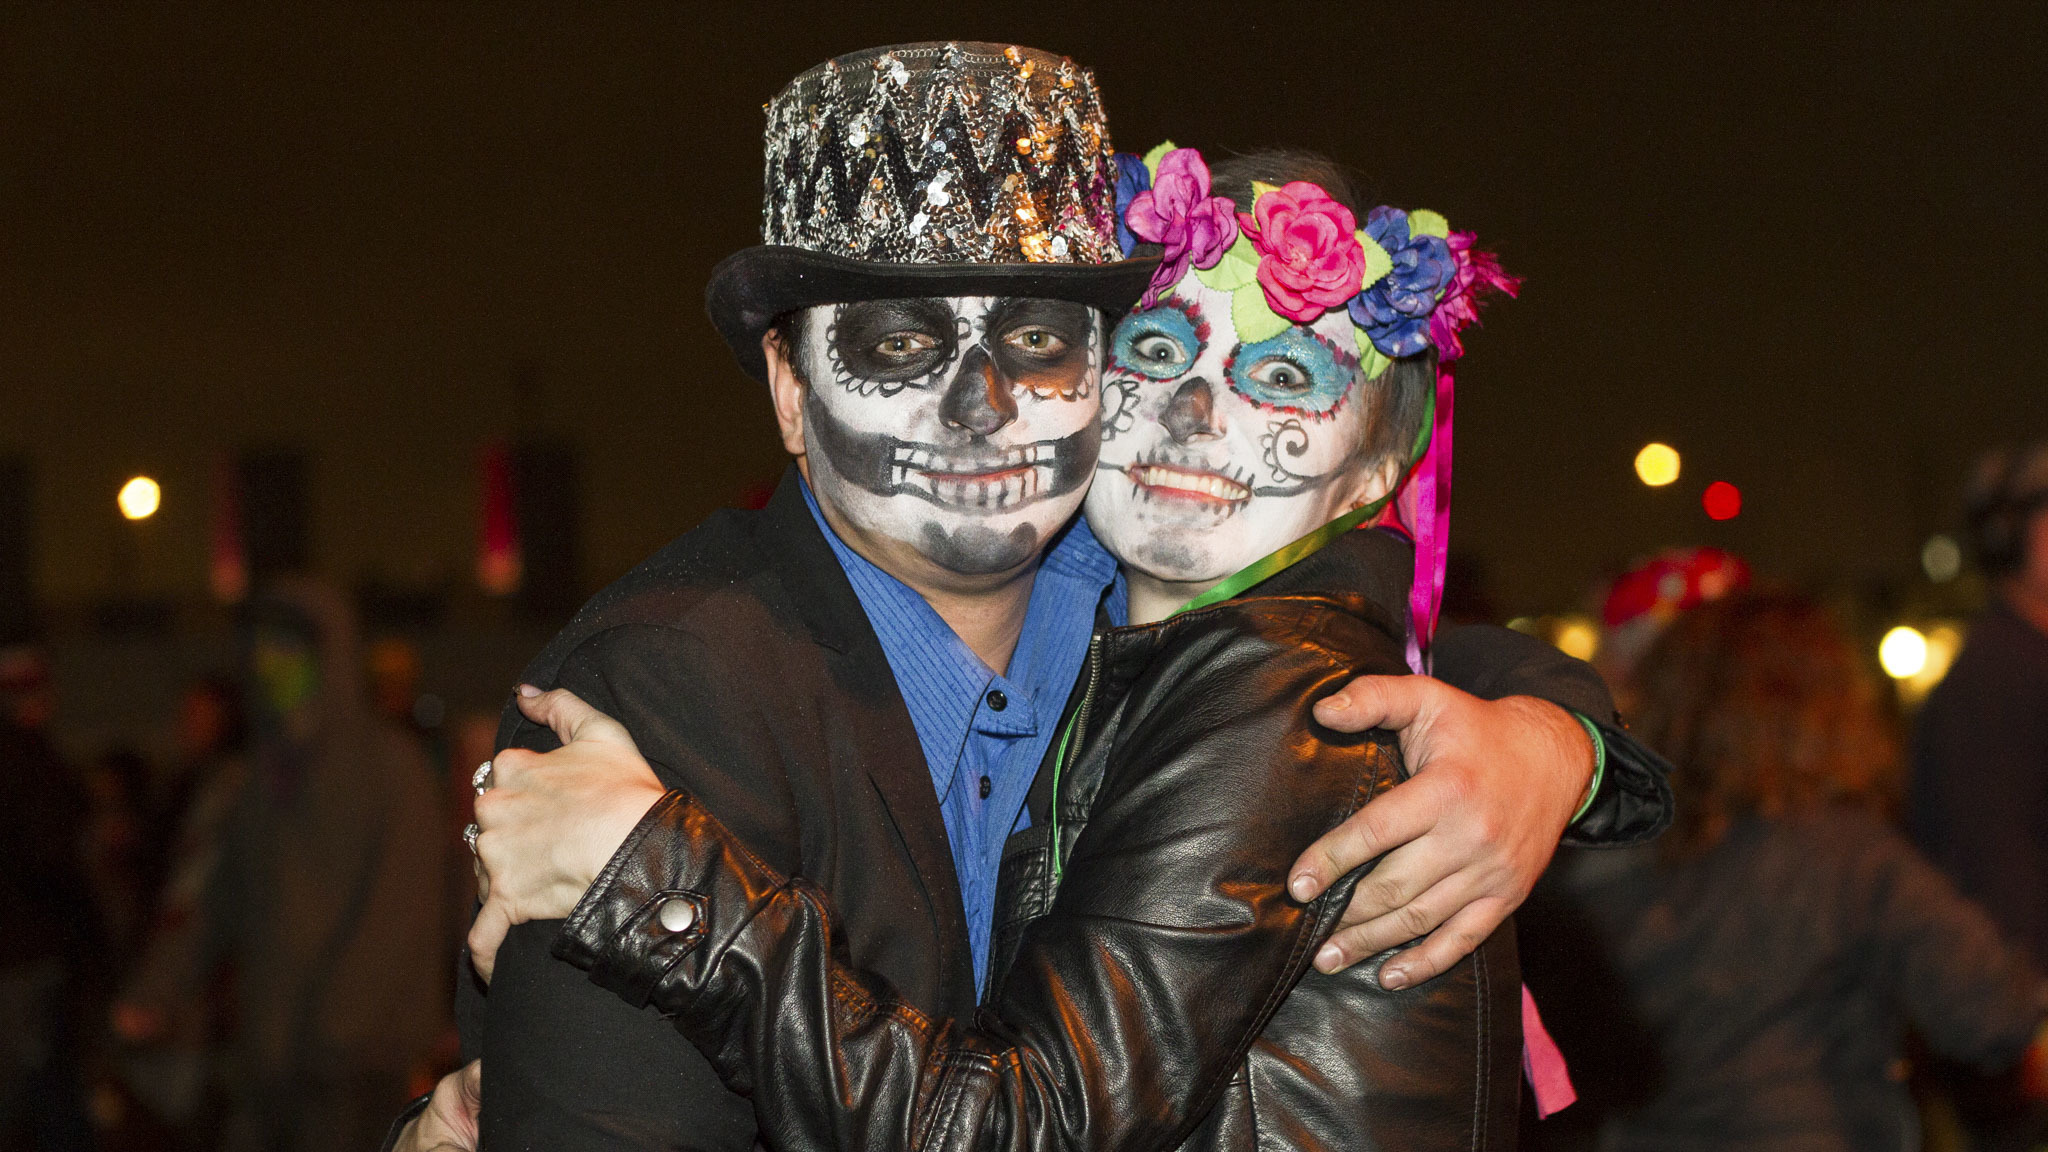 Electronic music fans showed up in costume at the 2015 Freaky Deaky Halloween festival in Toyota Park.